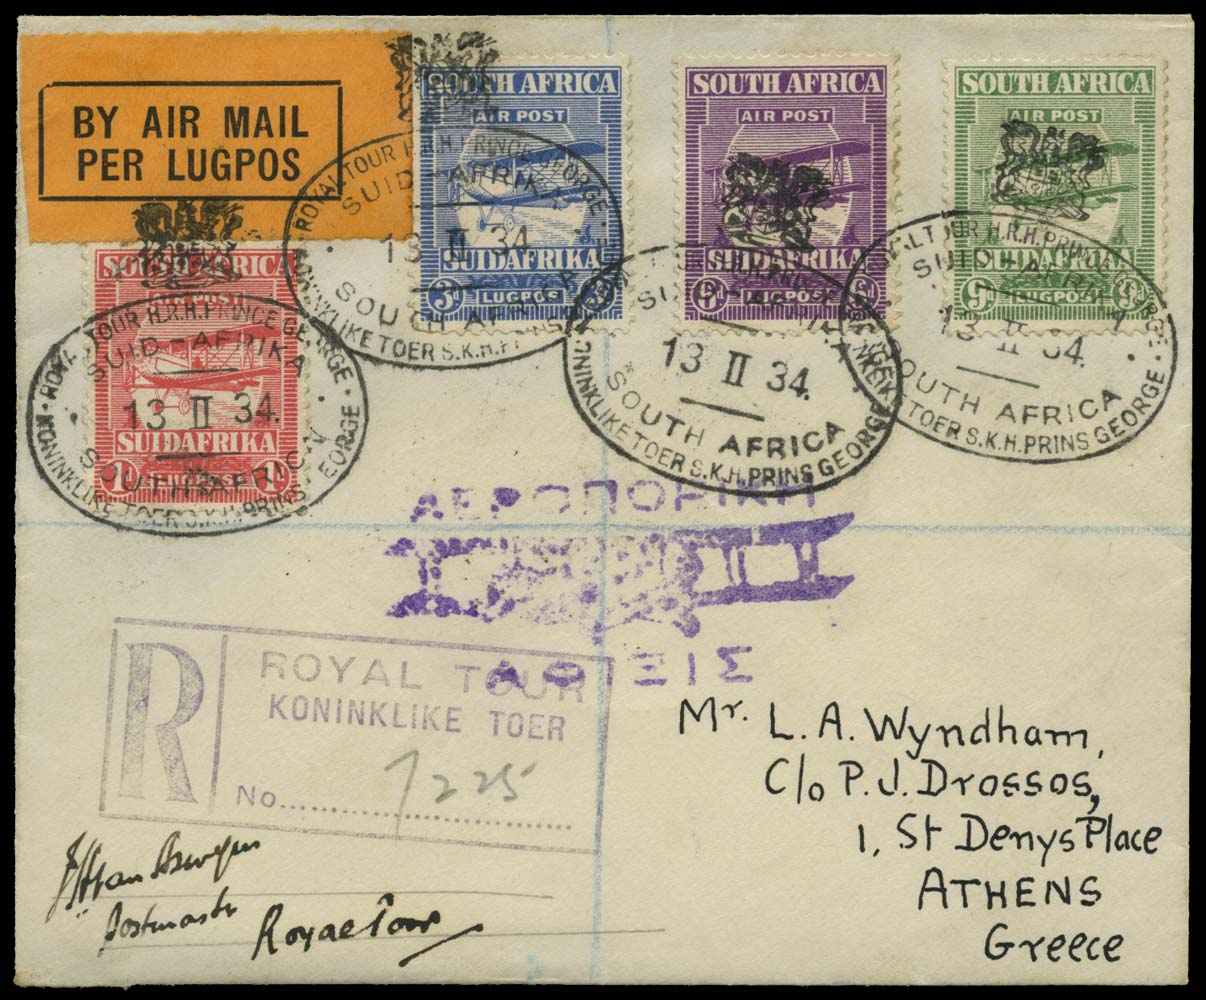 SOUTH AFRICA 1934  SG26/29 Cover signed Royal Tour registered airmail cover